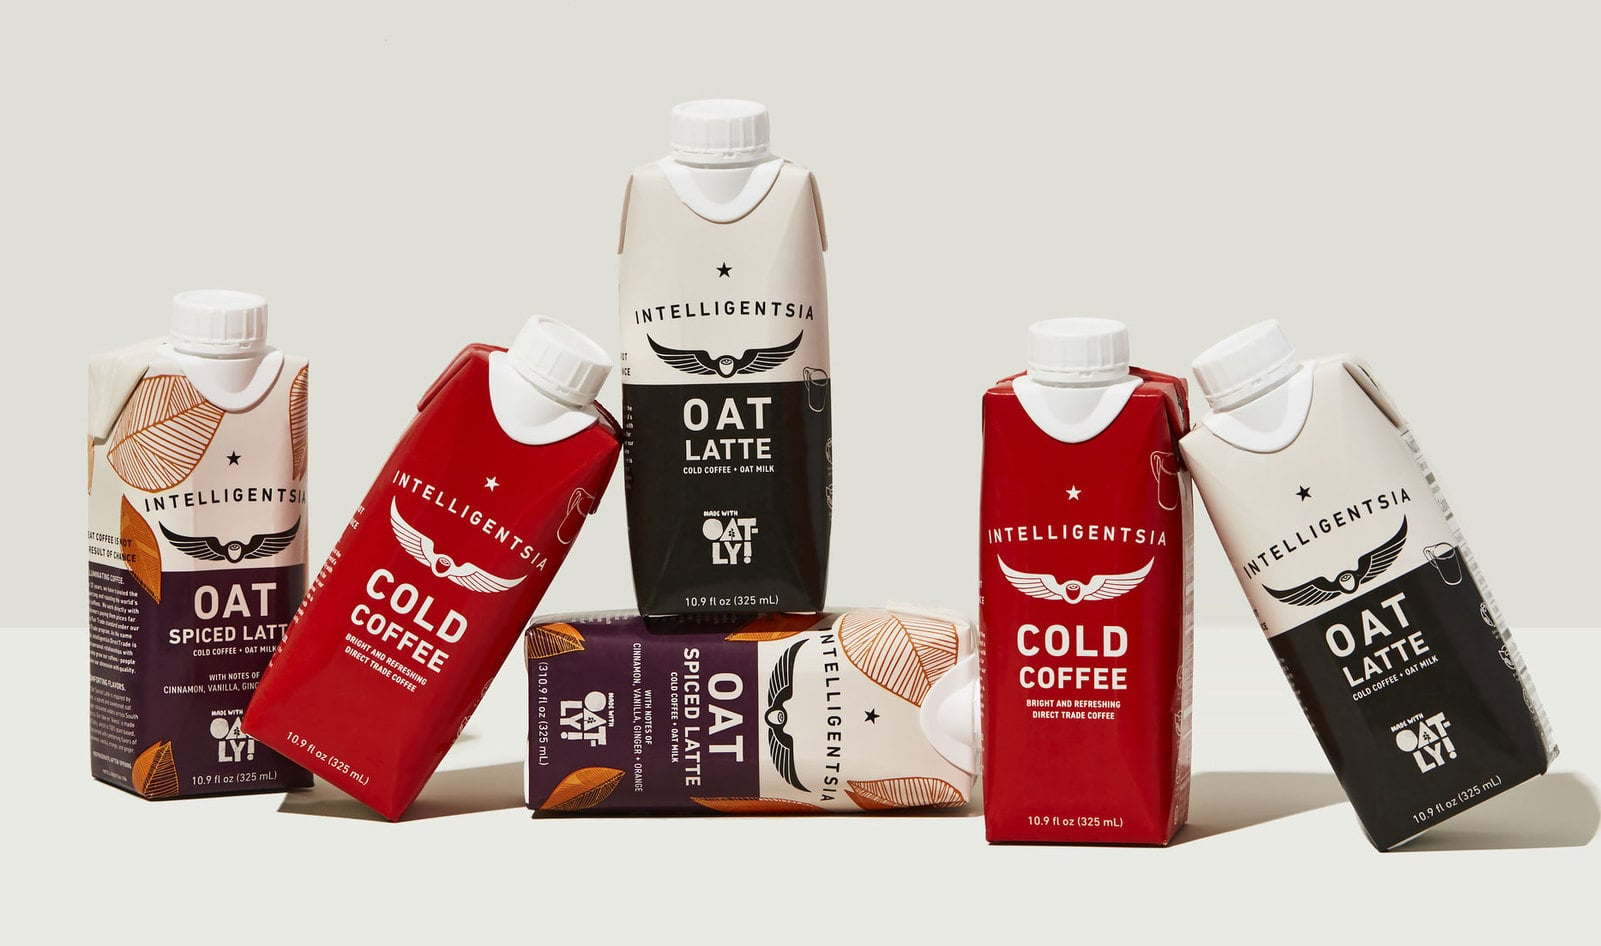 A row of packaged coffee drinks